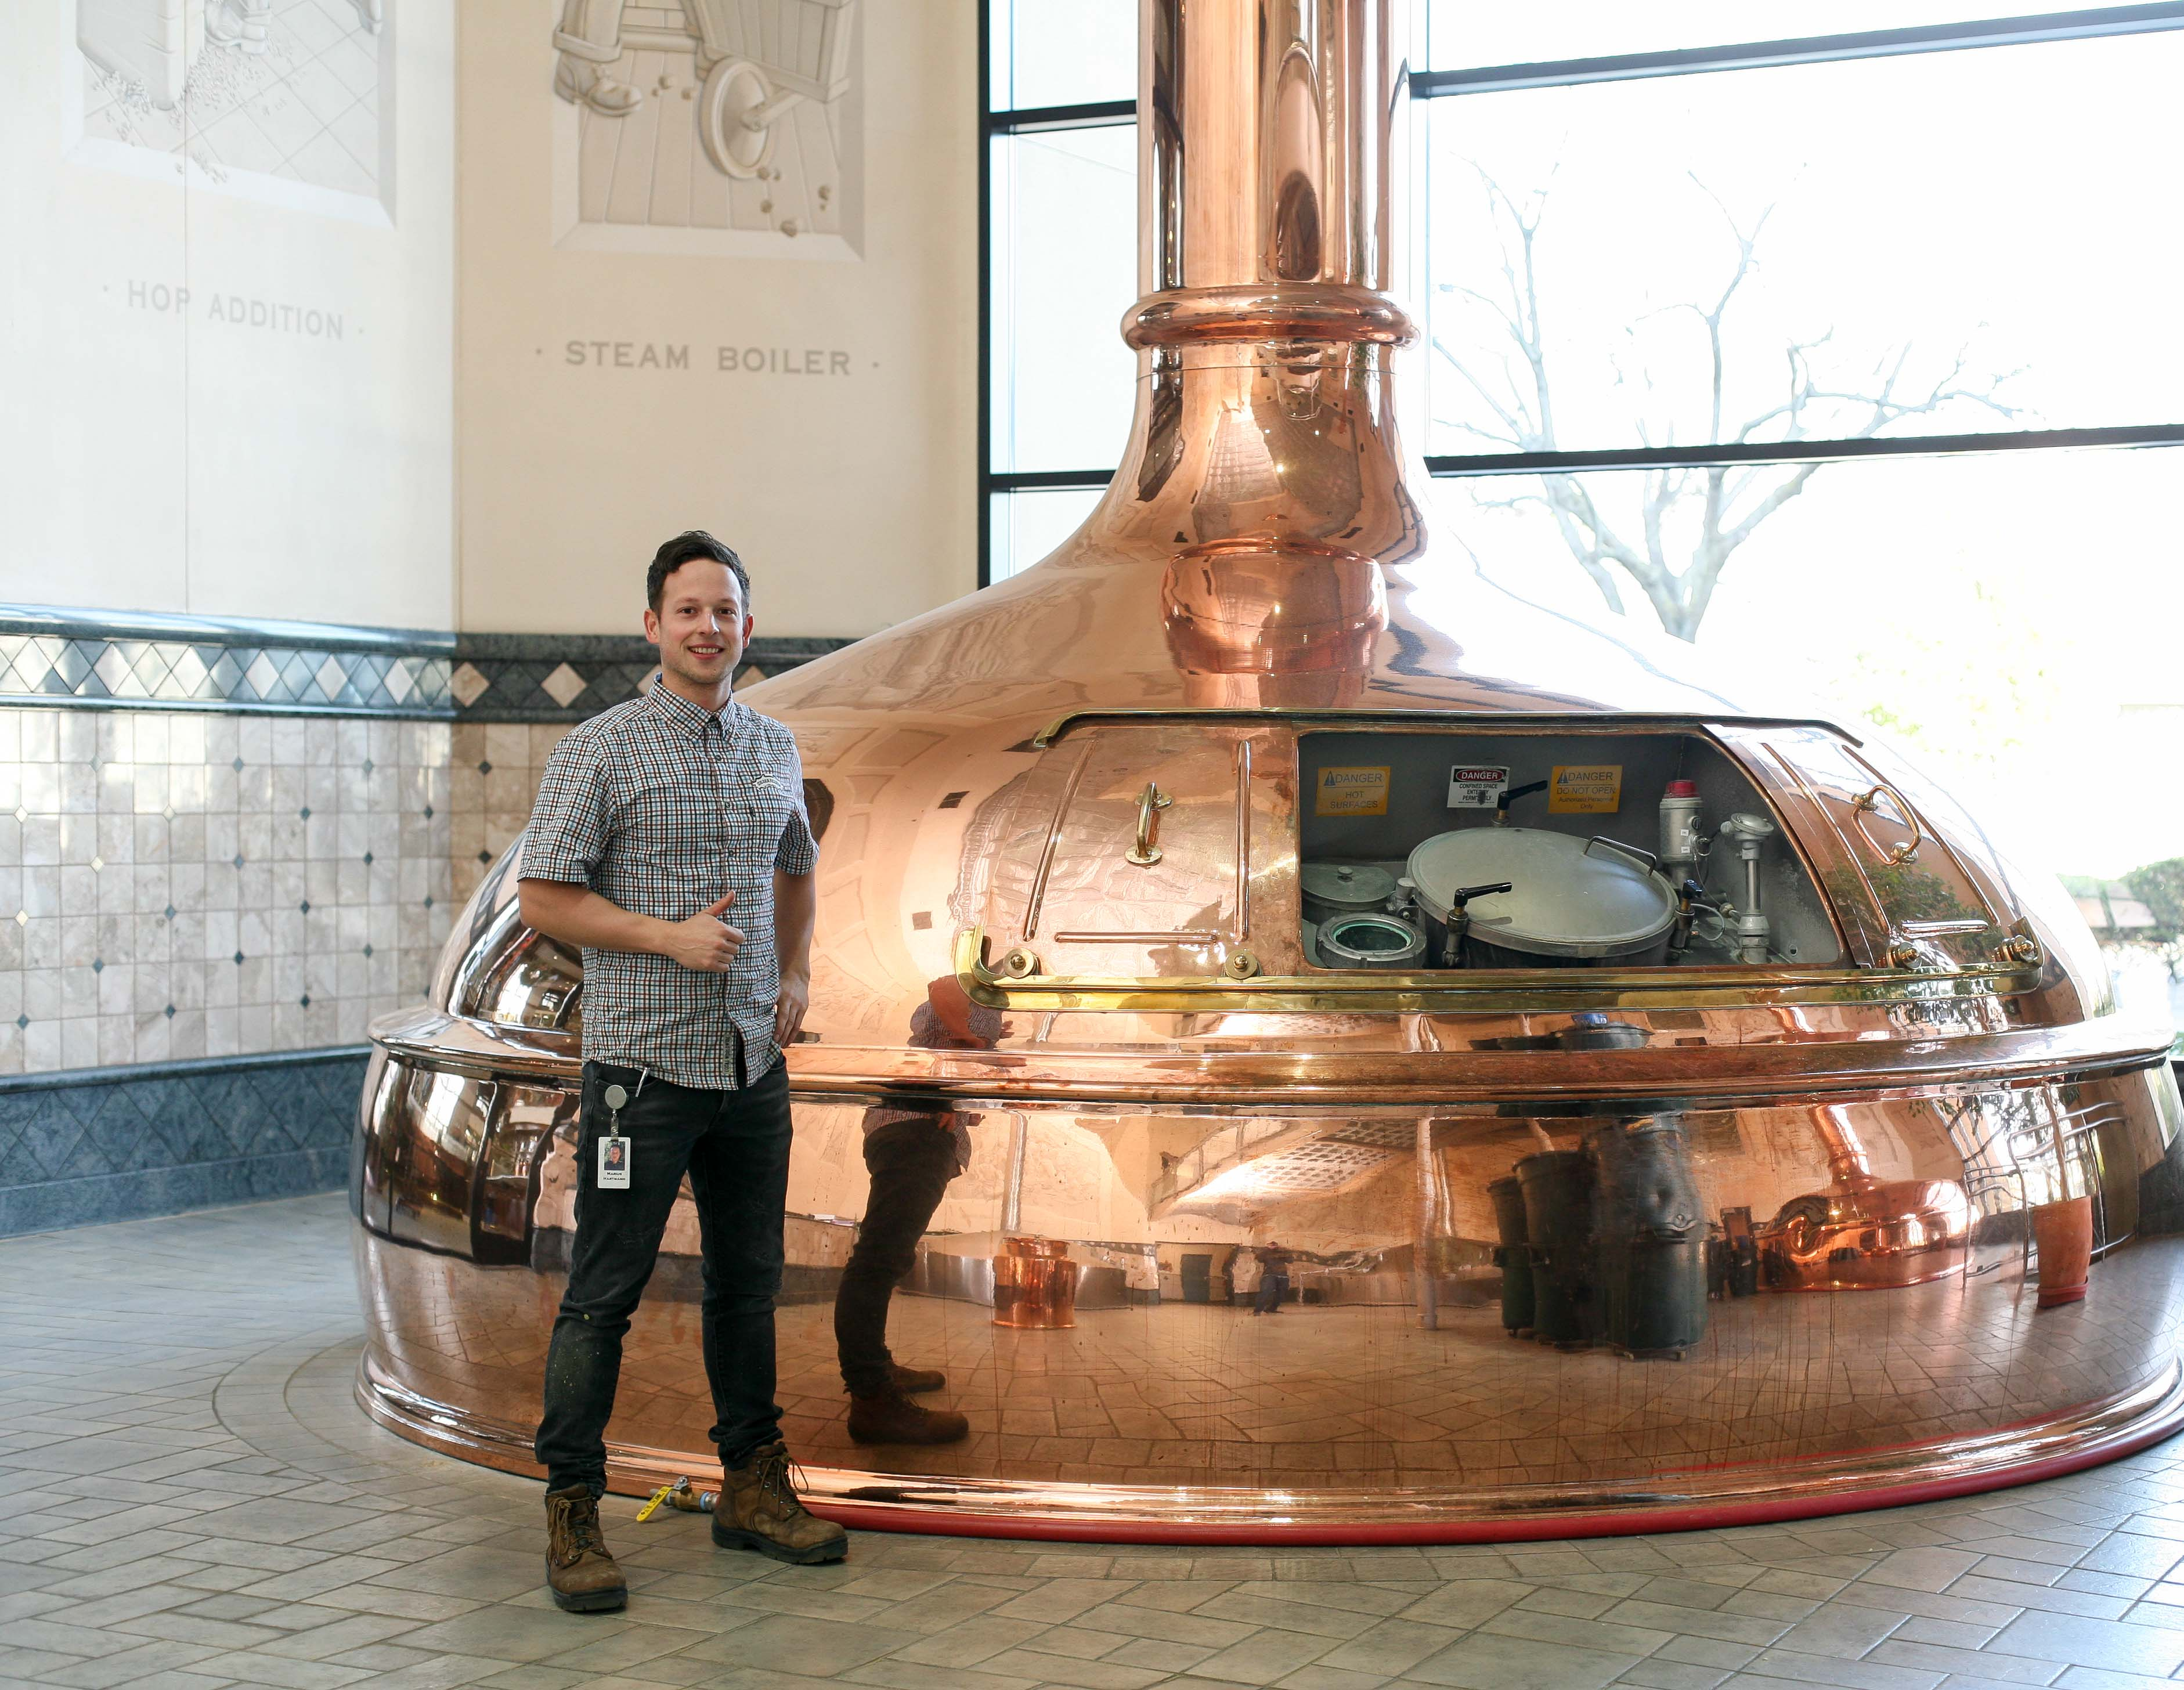 Young man in plaid shirt standing in front of a large brewing tank